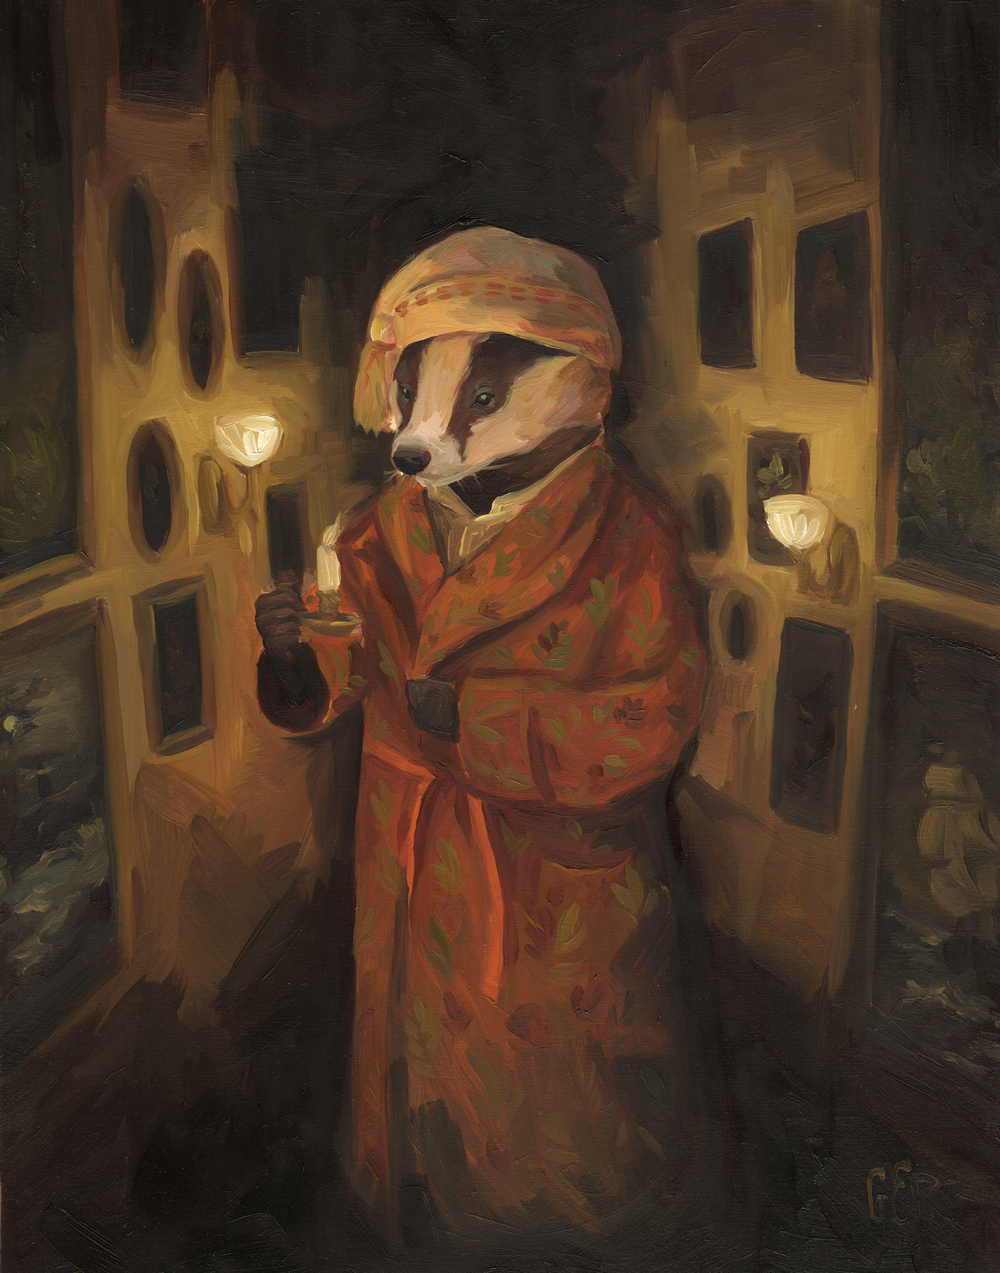 badger-by-candelight.png